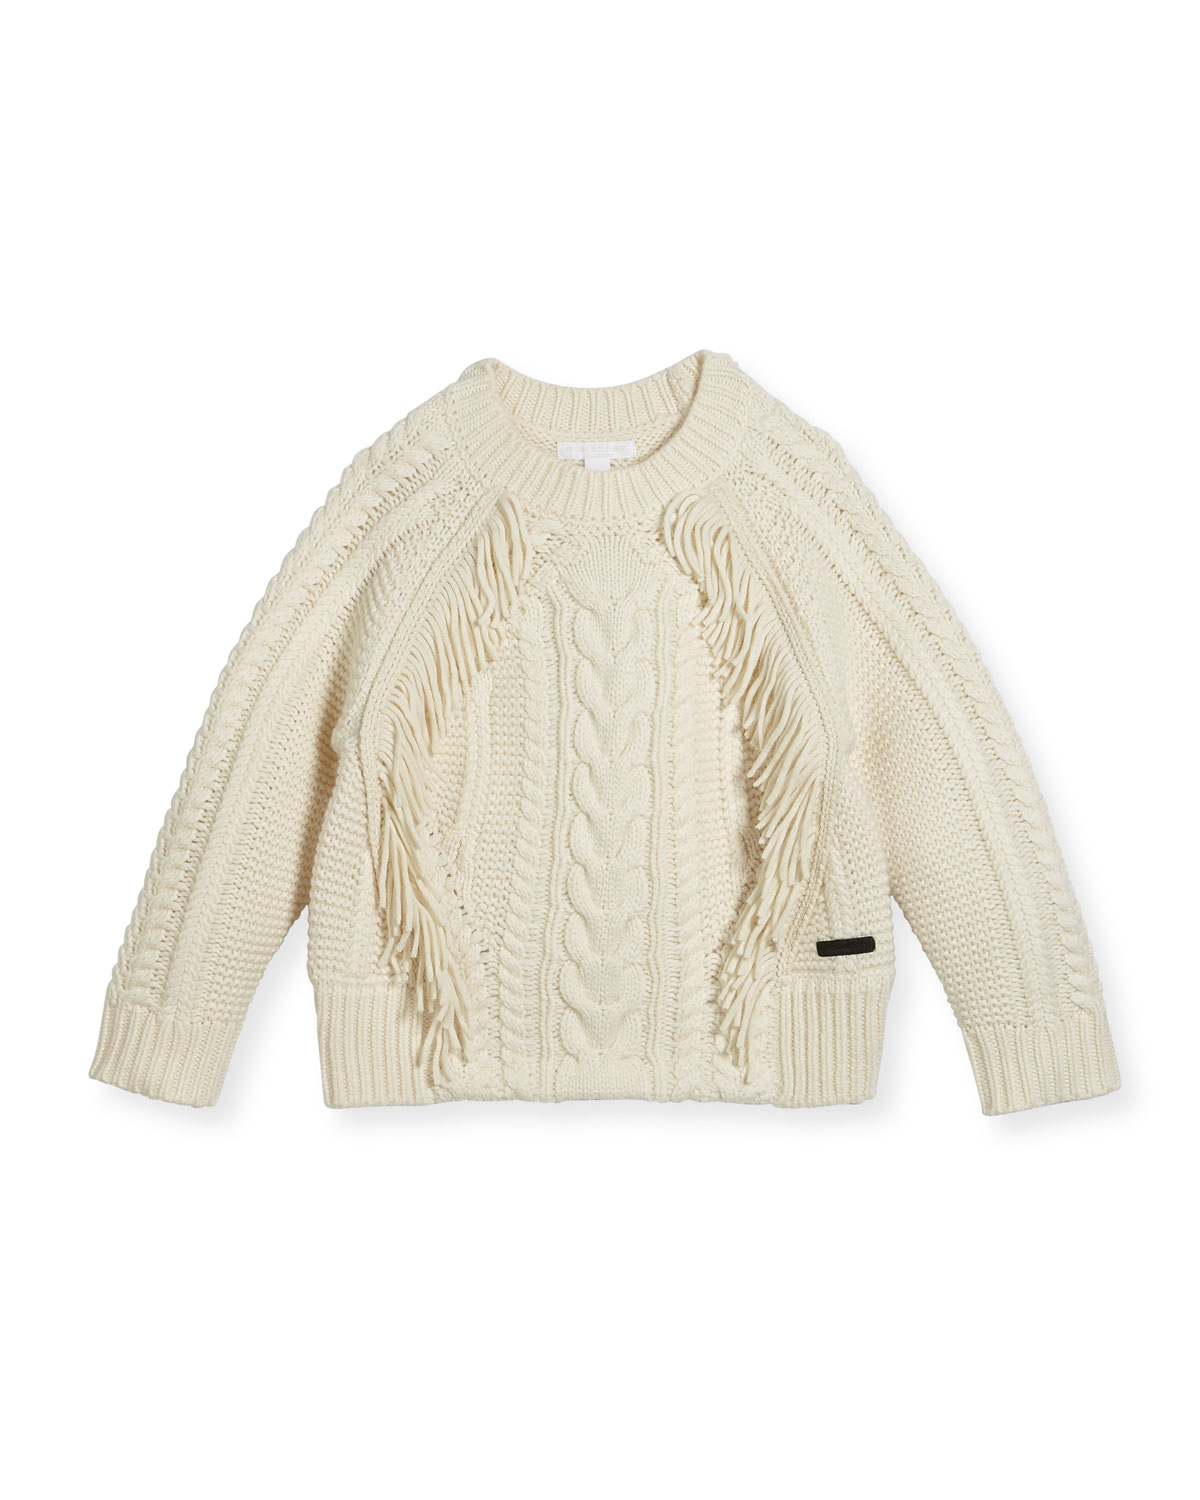 578a91f87b0395 Burberry Natasia Cable-Knit Fringe Sweater, Size 4-14 | Neiman Marcus